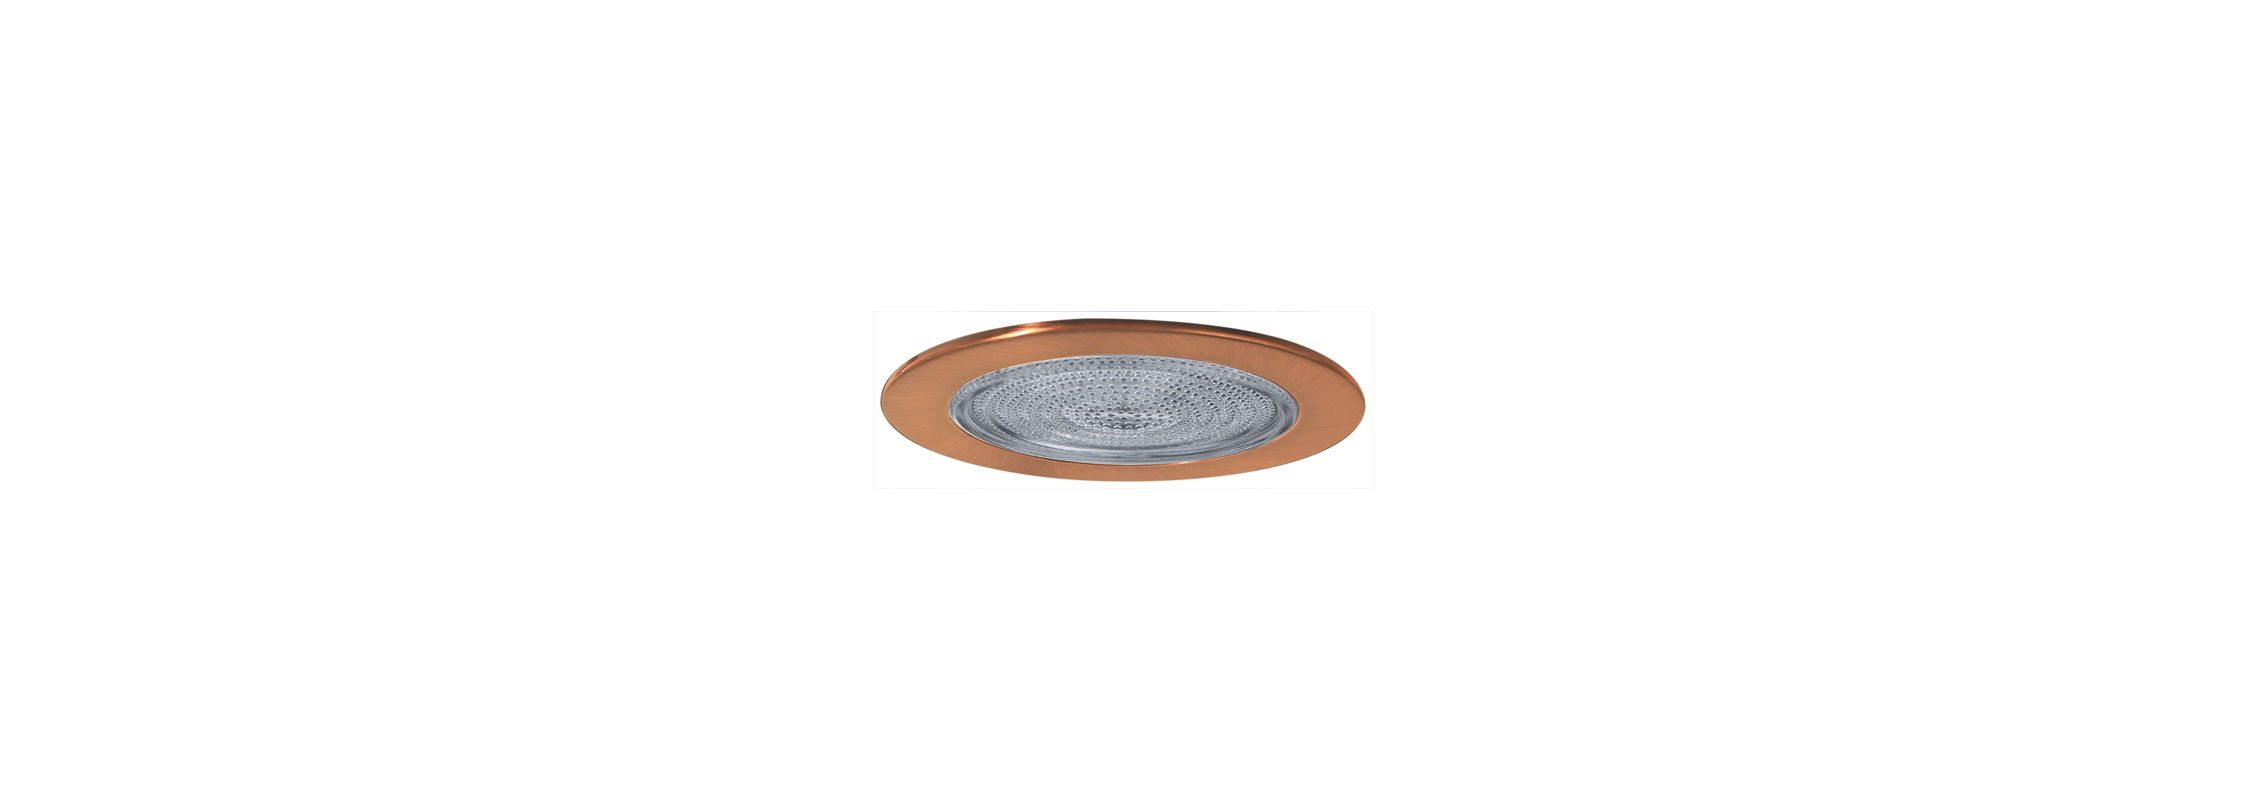 "Elco EL913 4"" Shower Trim with Fresnel Lens Copper Recessed Lights"